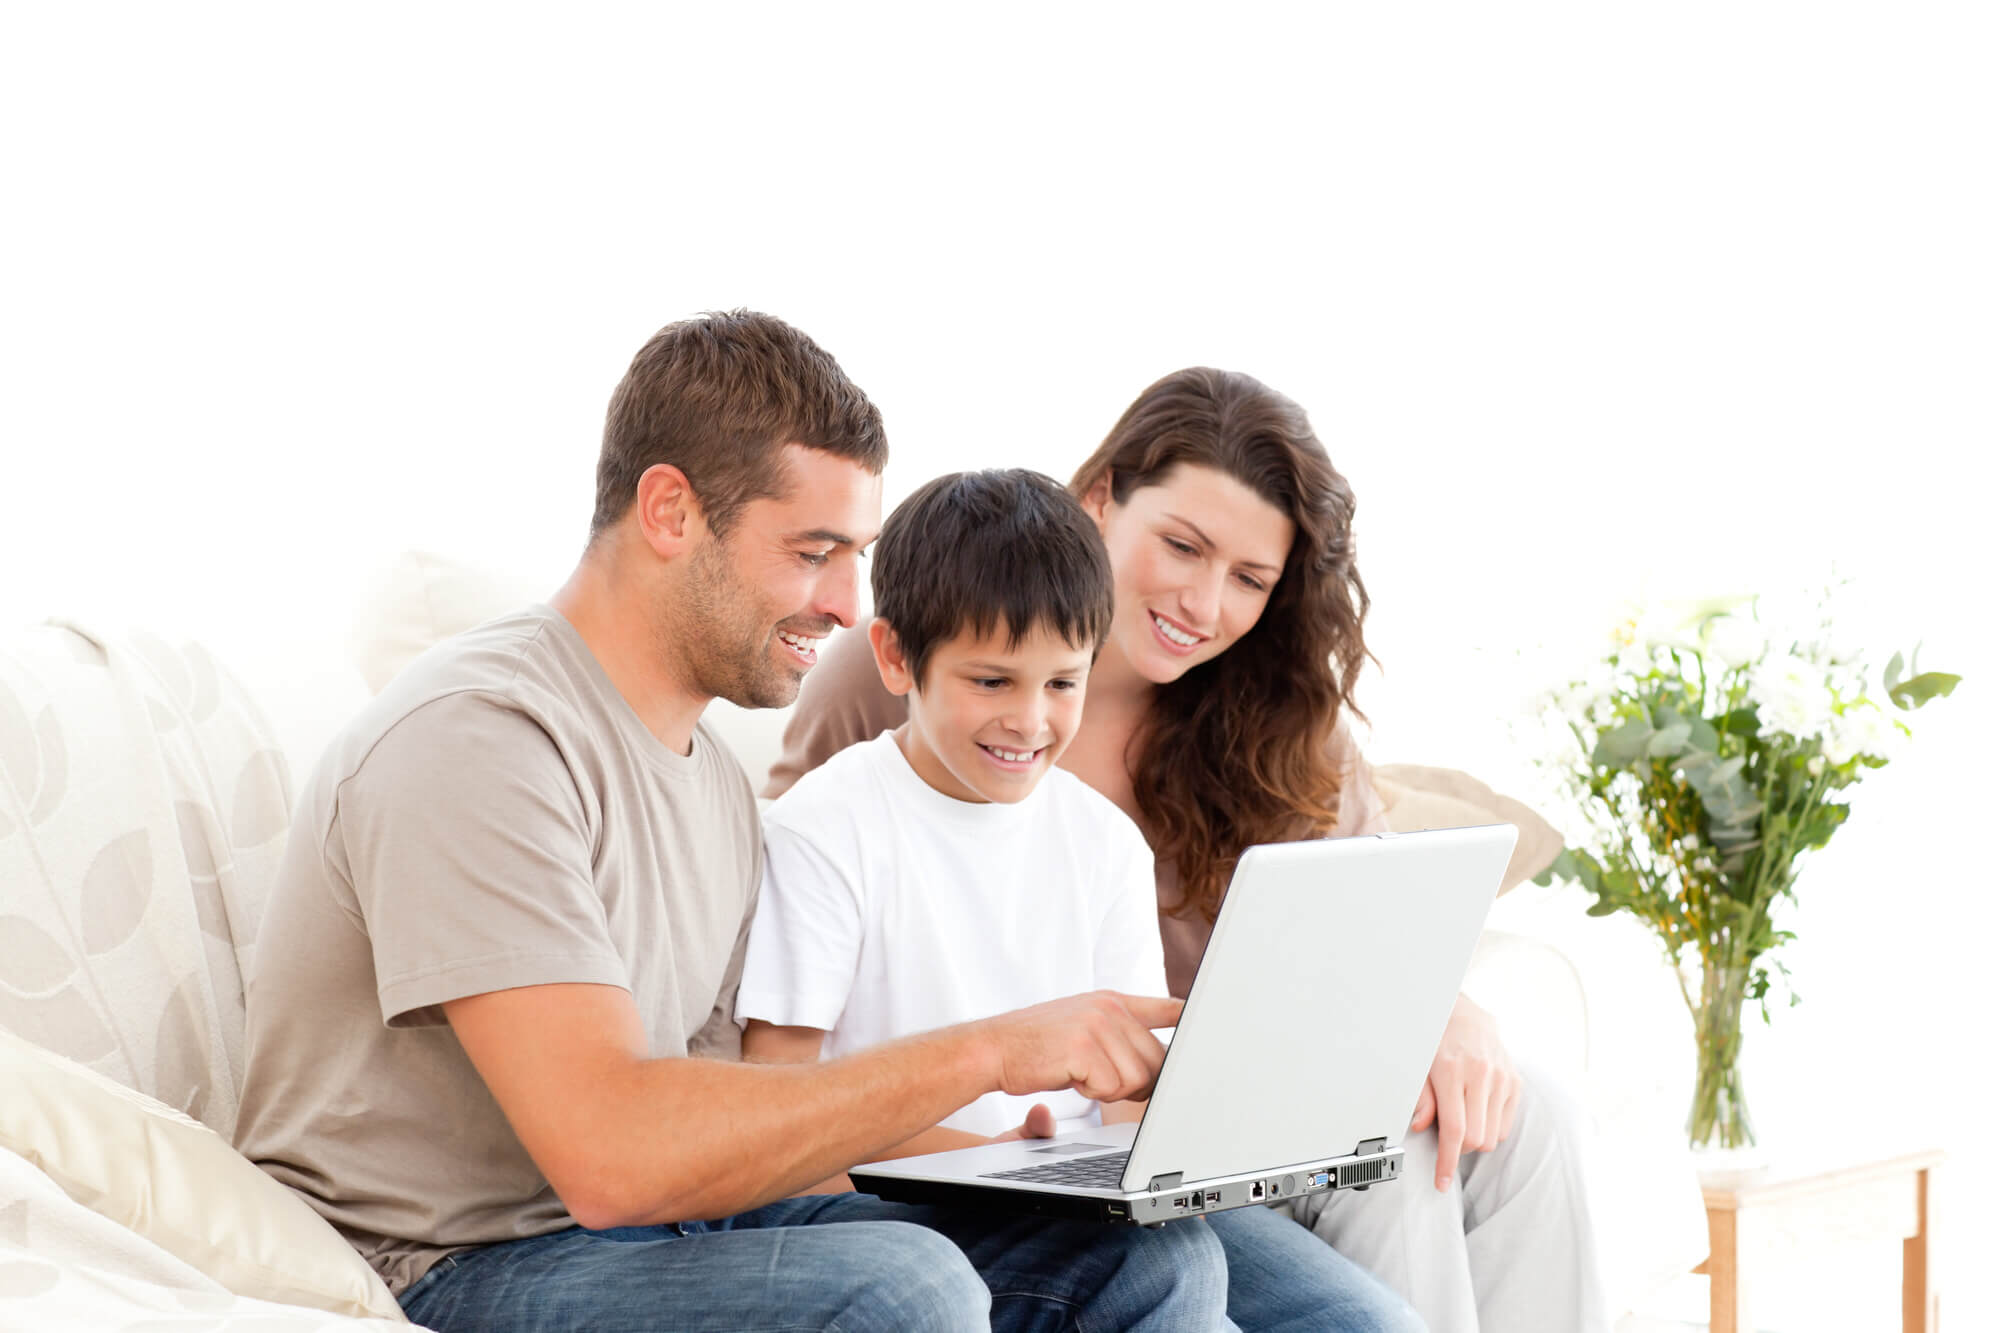 mom dad and son looking at a laptop